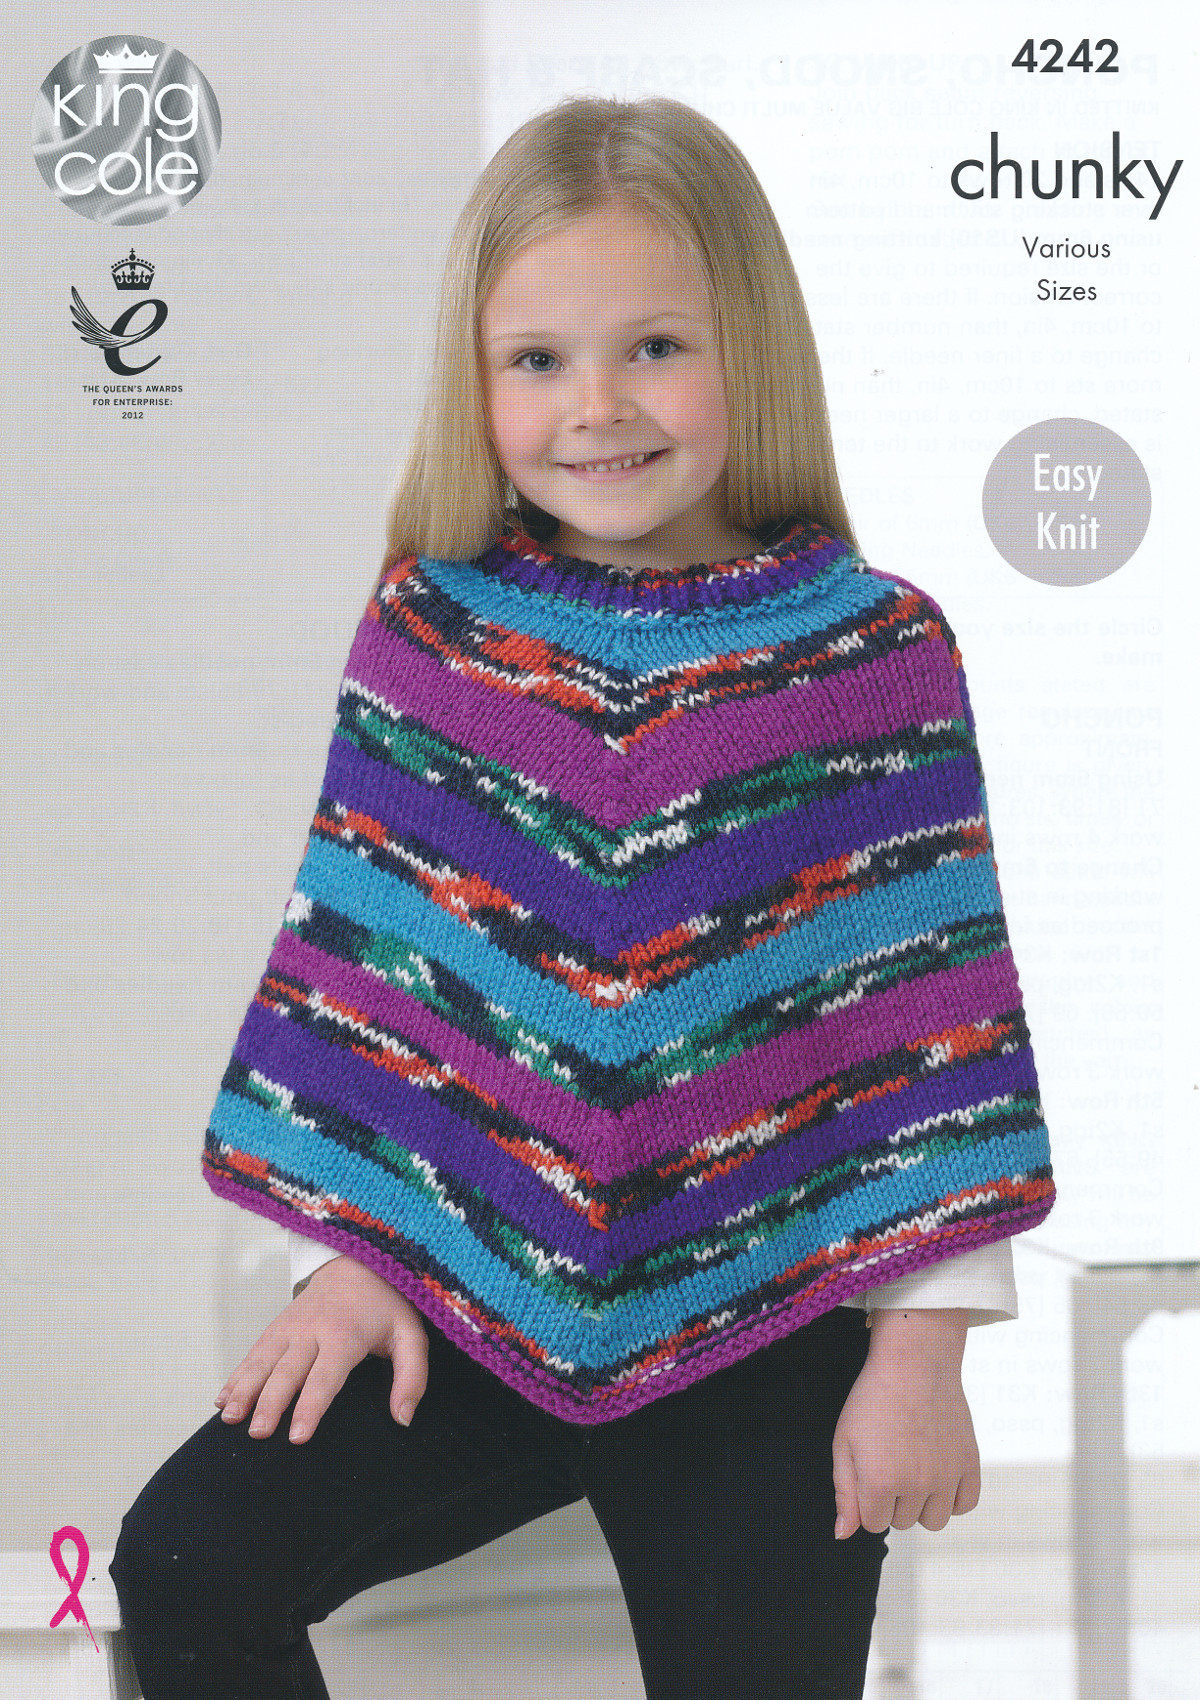 Knitted Poncho Elegant Girls Chunky Knitting Pattern King Cole Easy Knit Poncho Of Amazing 49 Photos Knitted Poncho